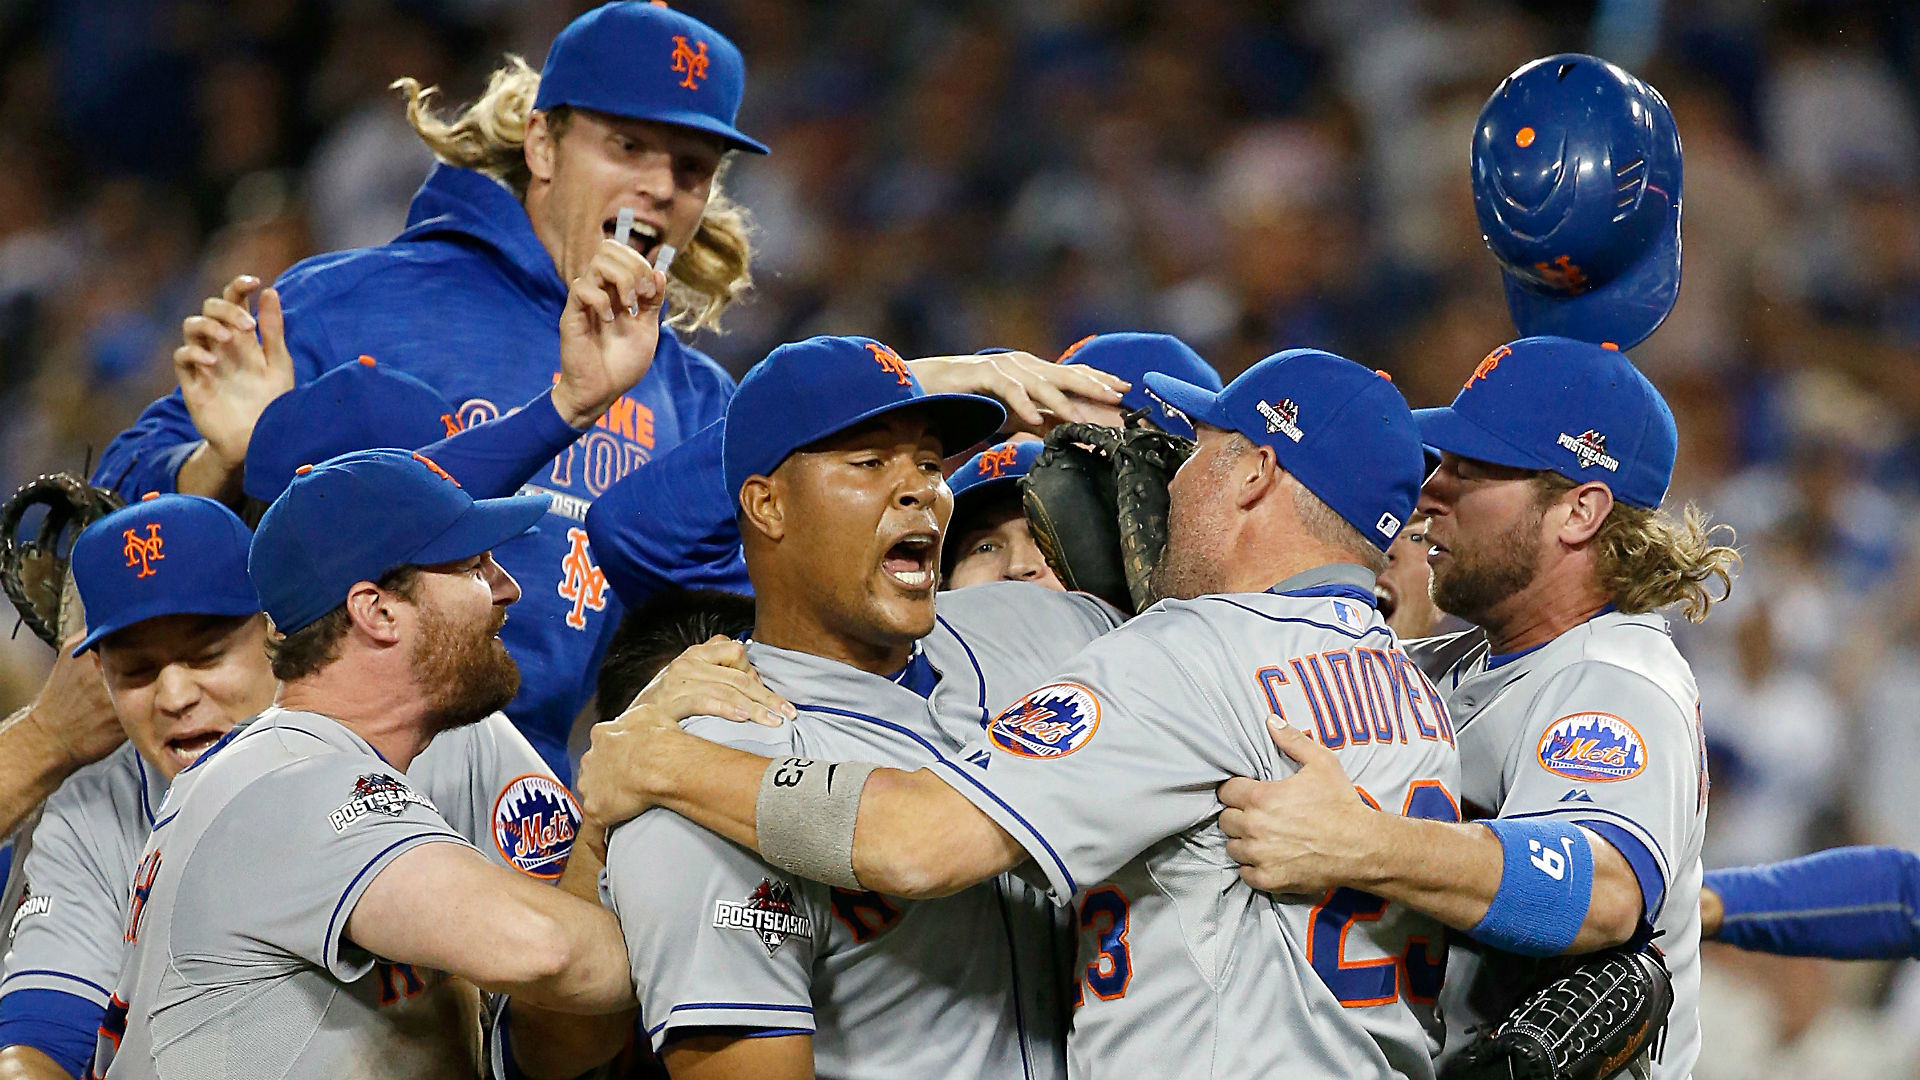 Fate By Numbers Jeurys Familia Getty Ftrjpg Rw Witwpbpgaasf